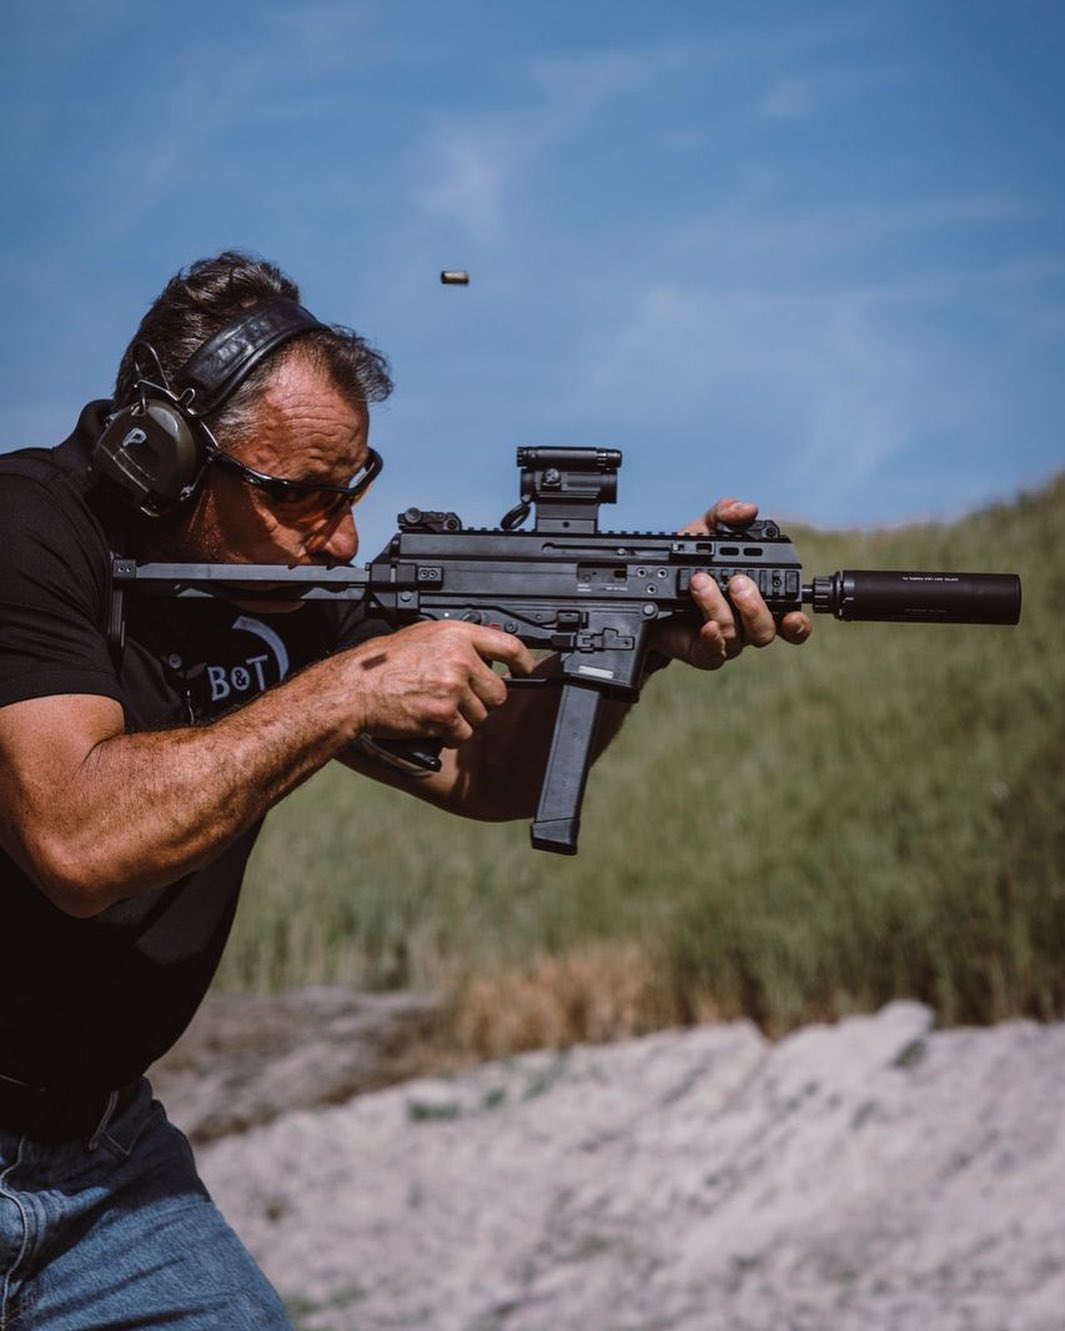 Pannone putting rounds downrange with the APC9-G.